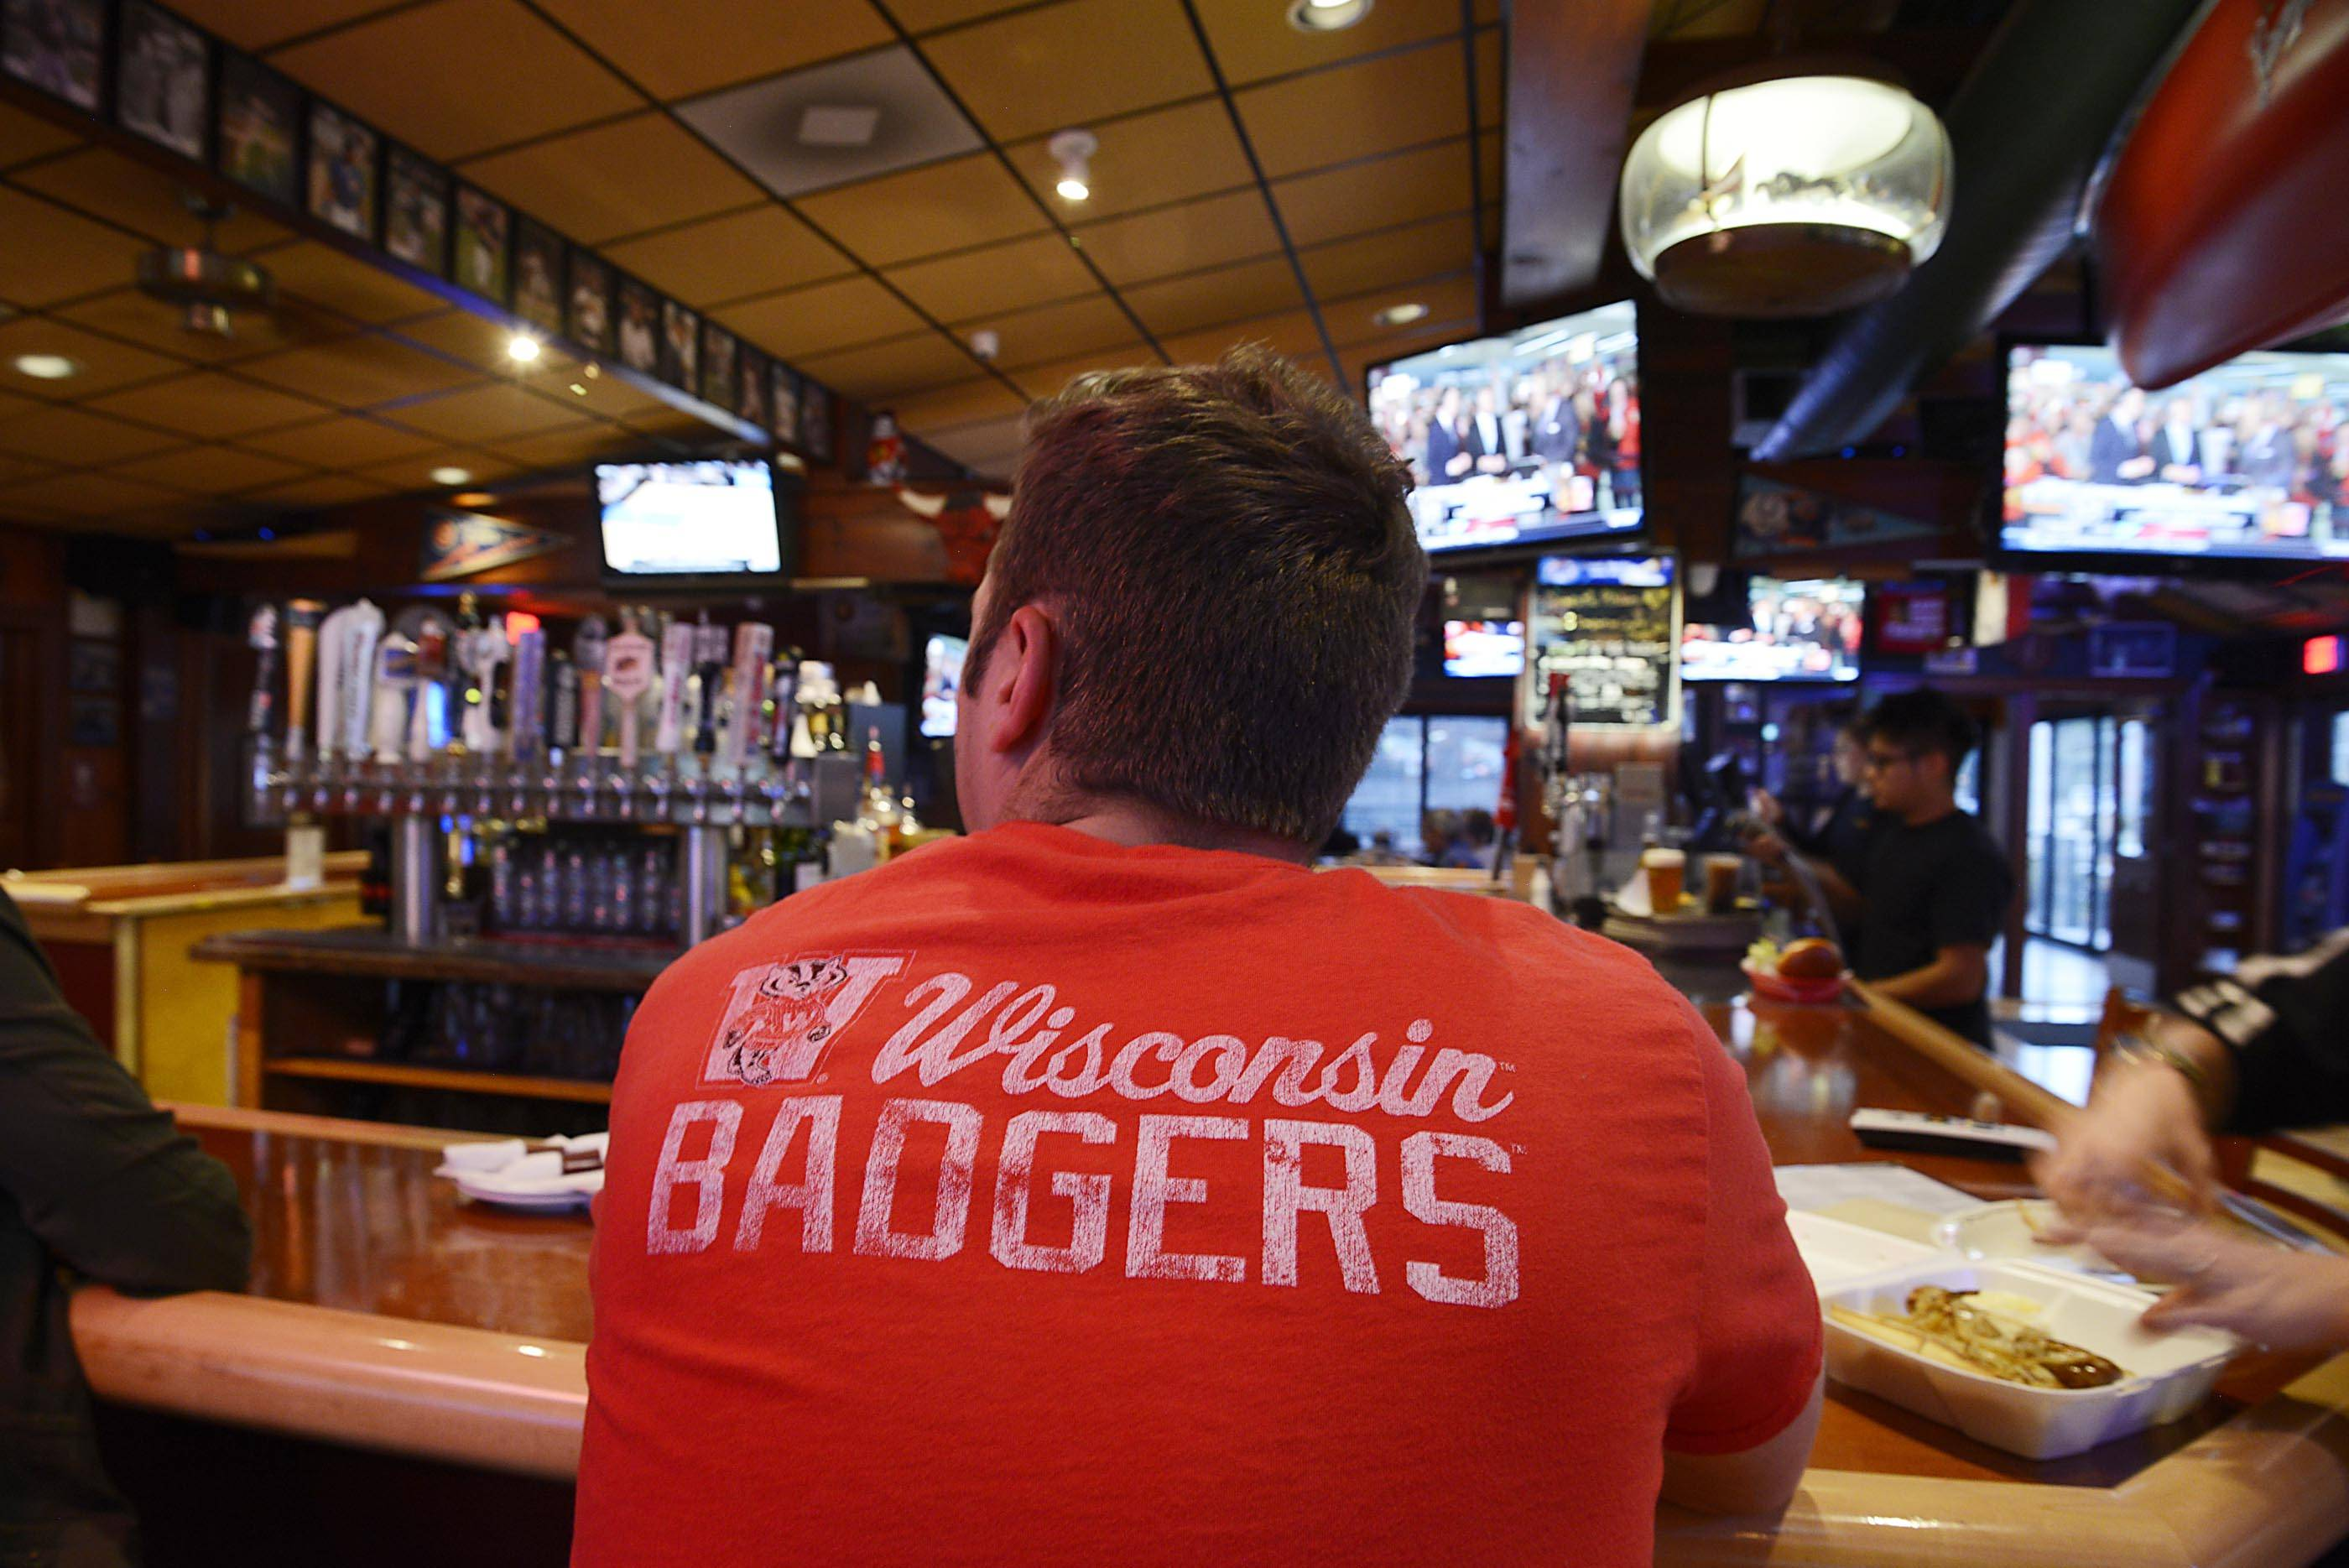 The Countryside Saloon in Des Plaines is a Wisconsin Badgers bar, and fans will gather there this weekend to watch the NCAA Final Four tournament.